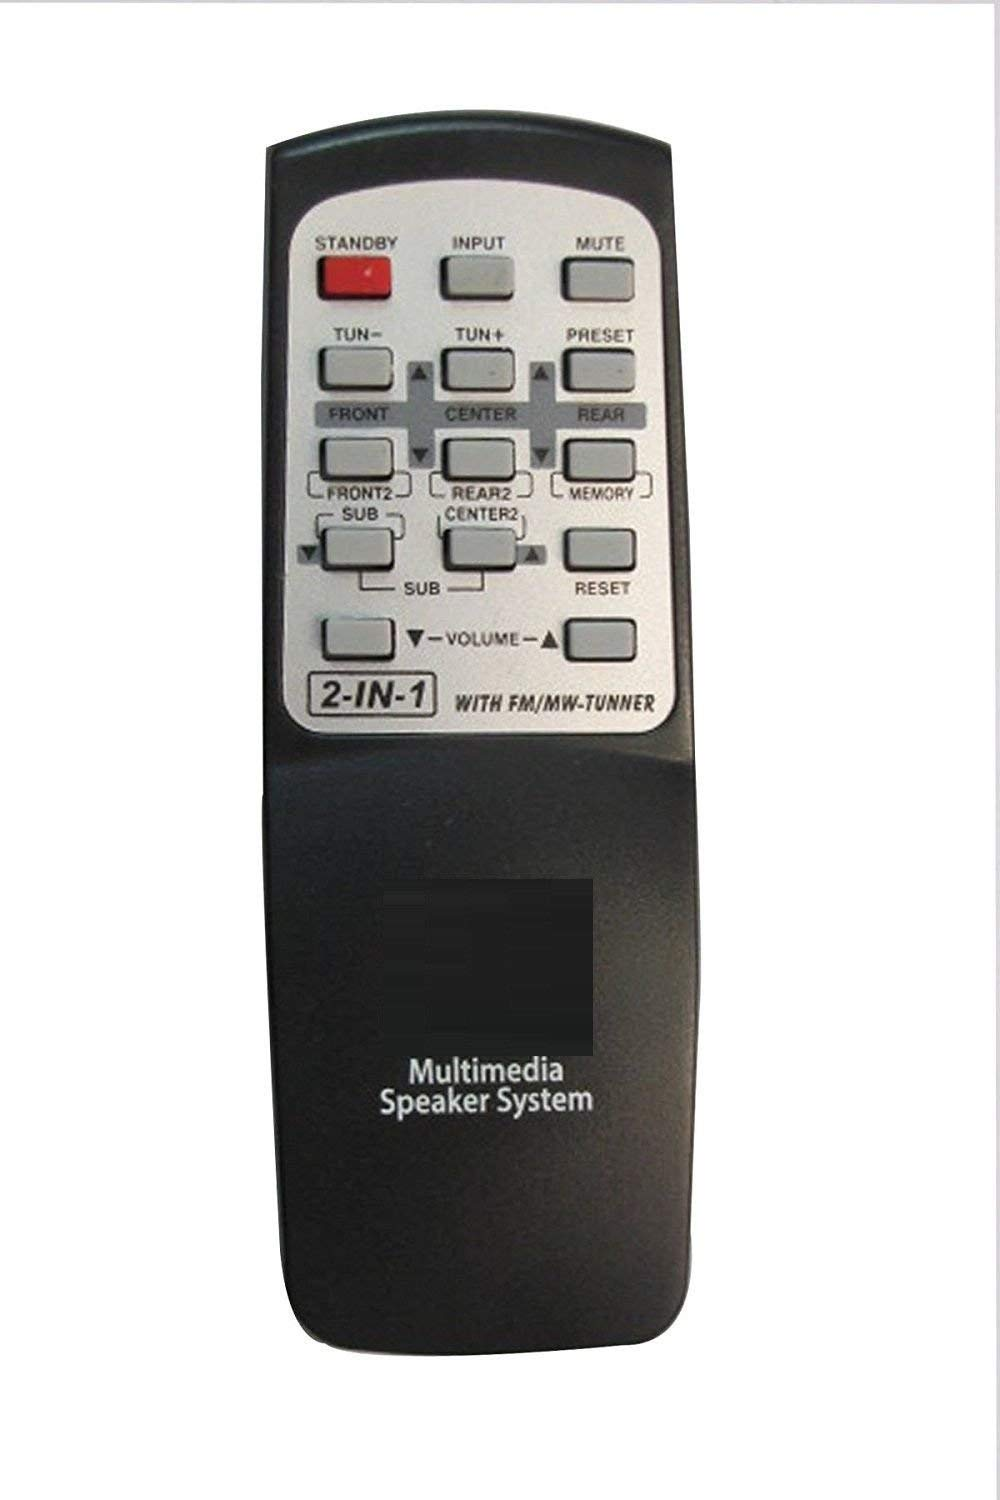 GWS Remote Control for Philips Home Theater